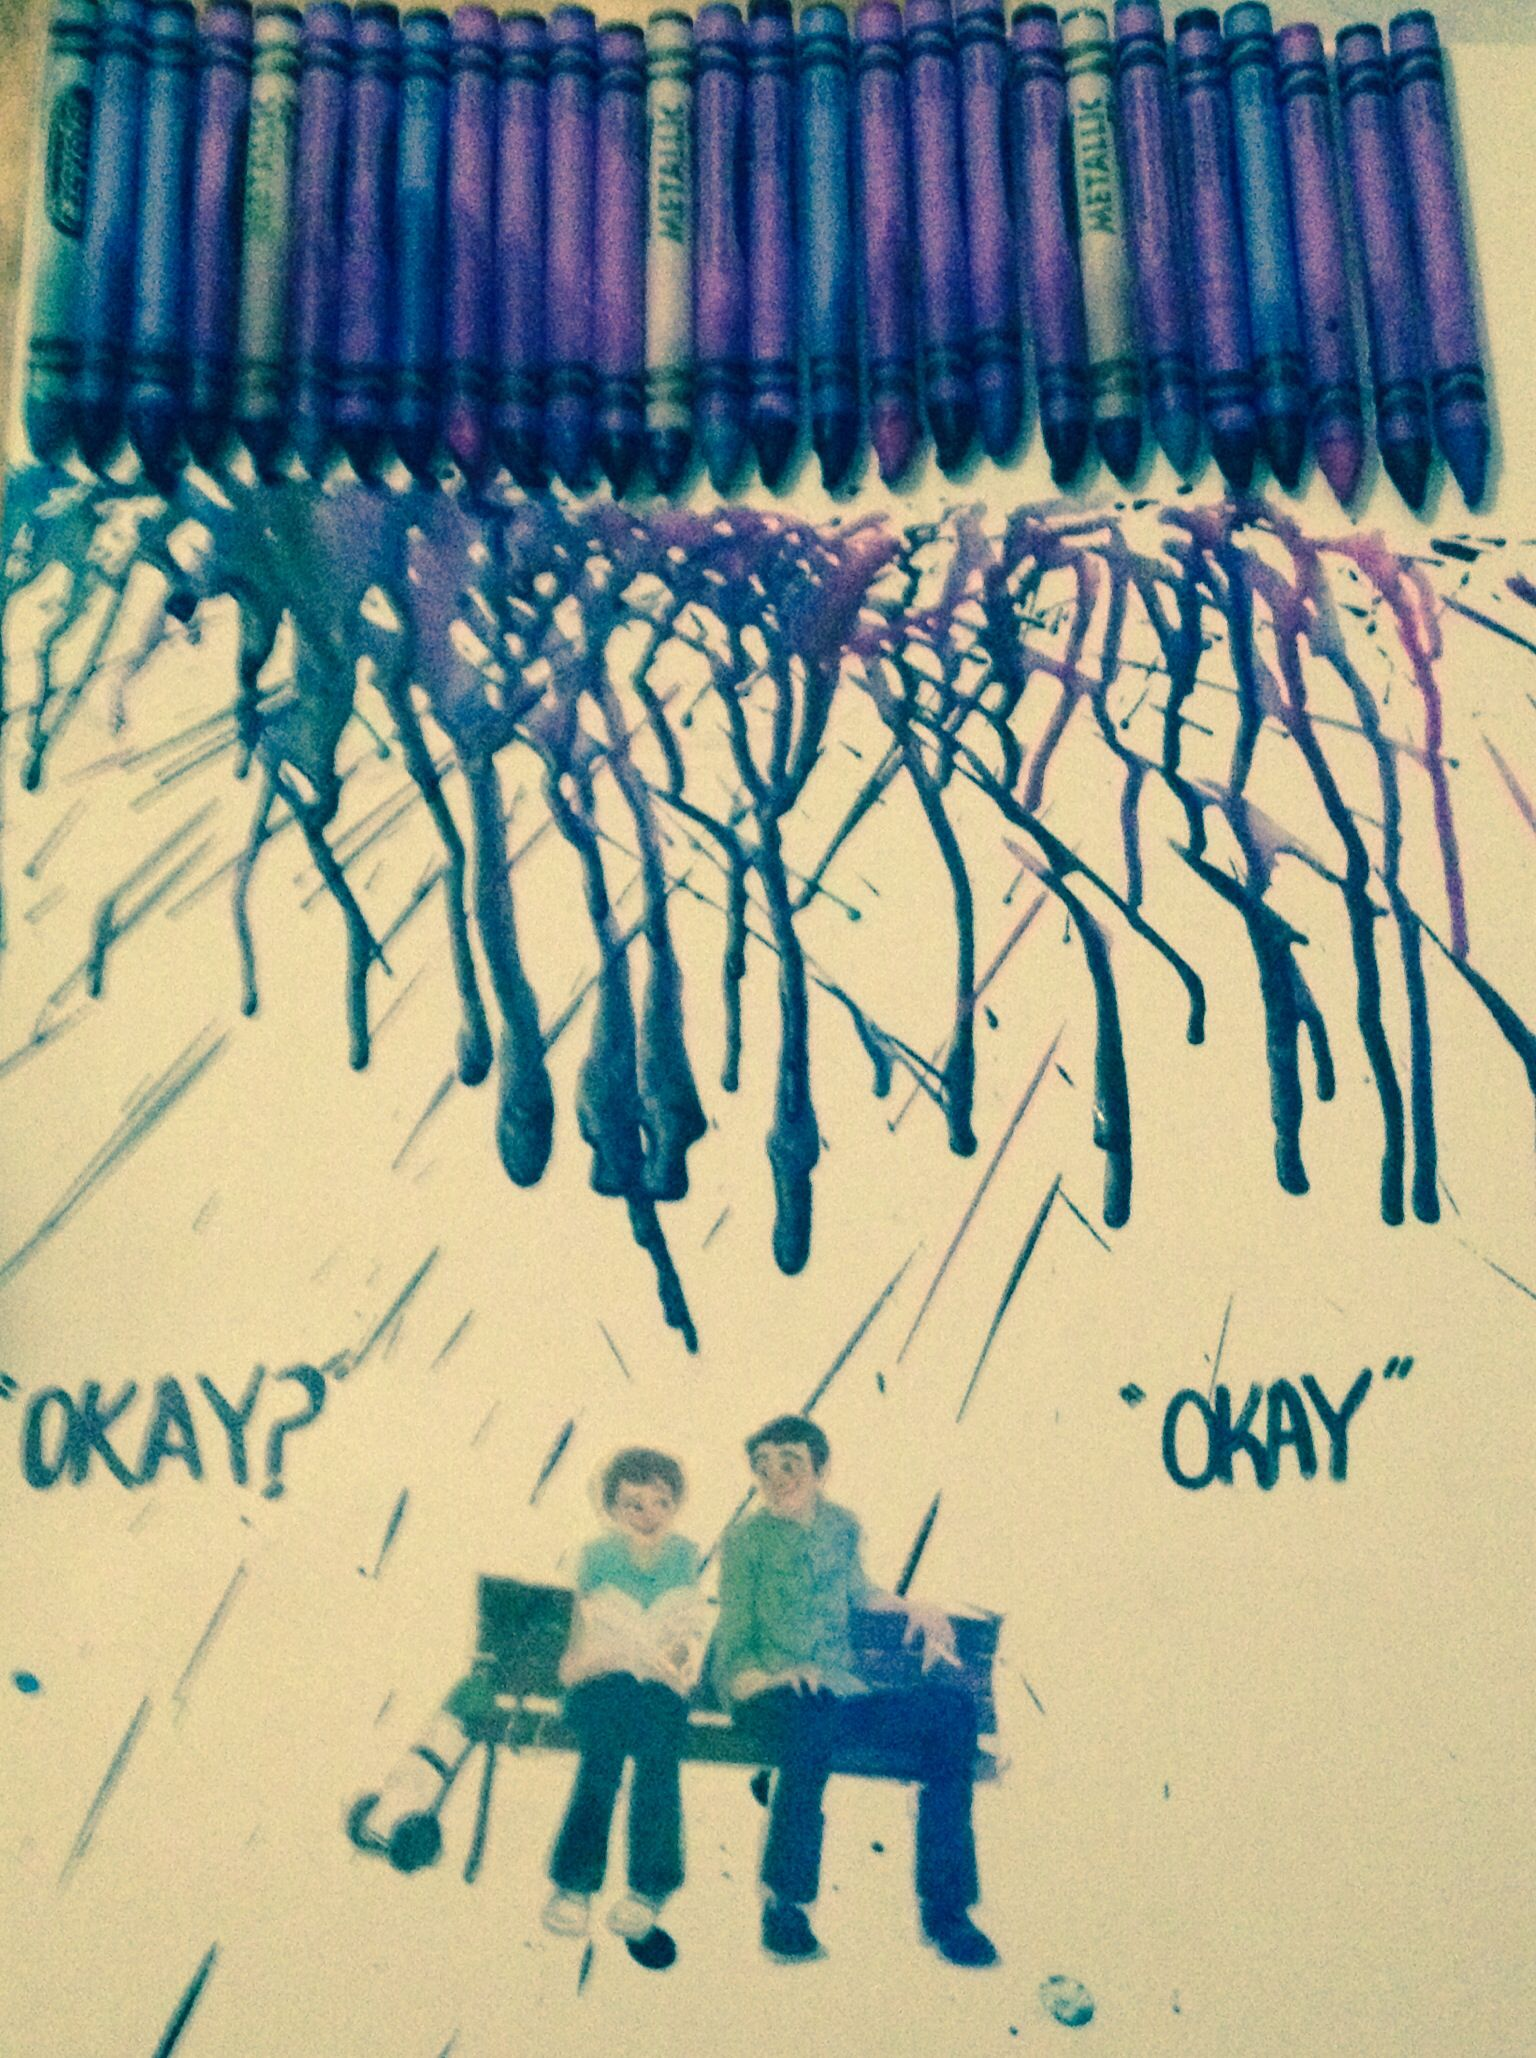 Fault In Our Stars Fan ArtIsaac The Fault In Our Stars Fan Art